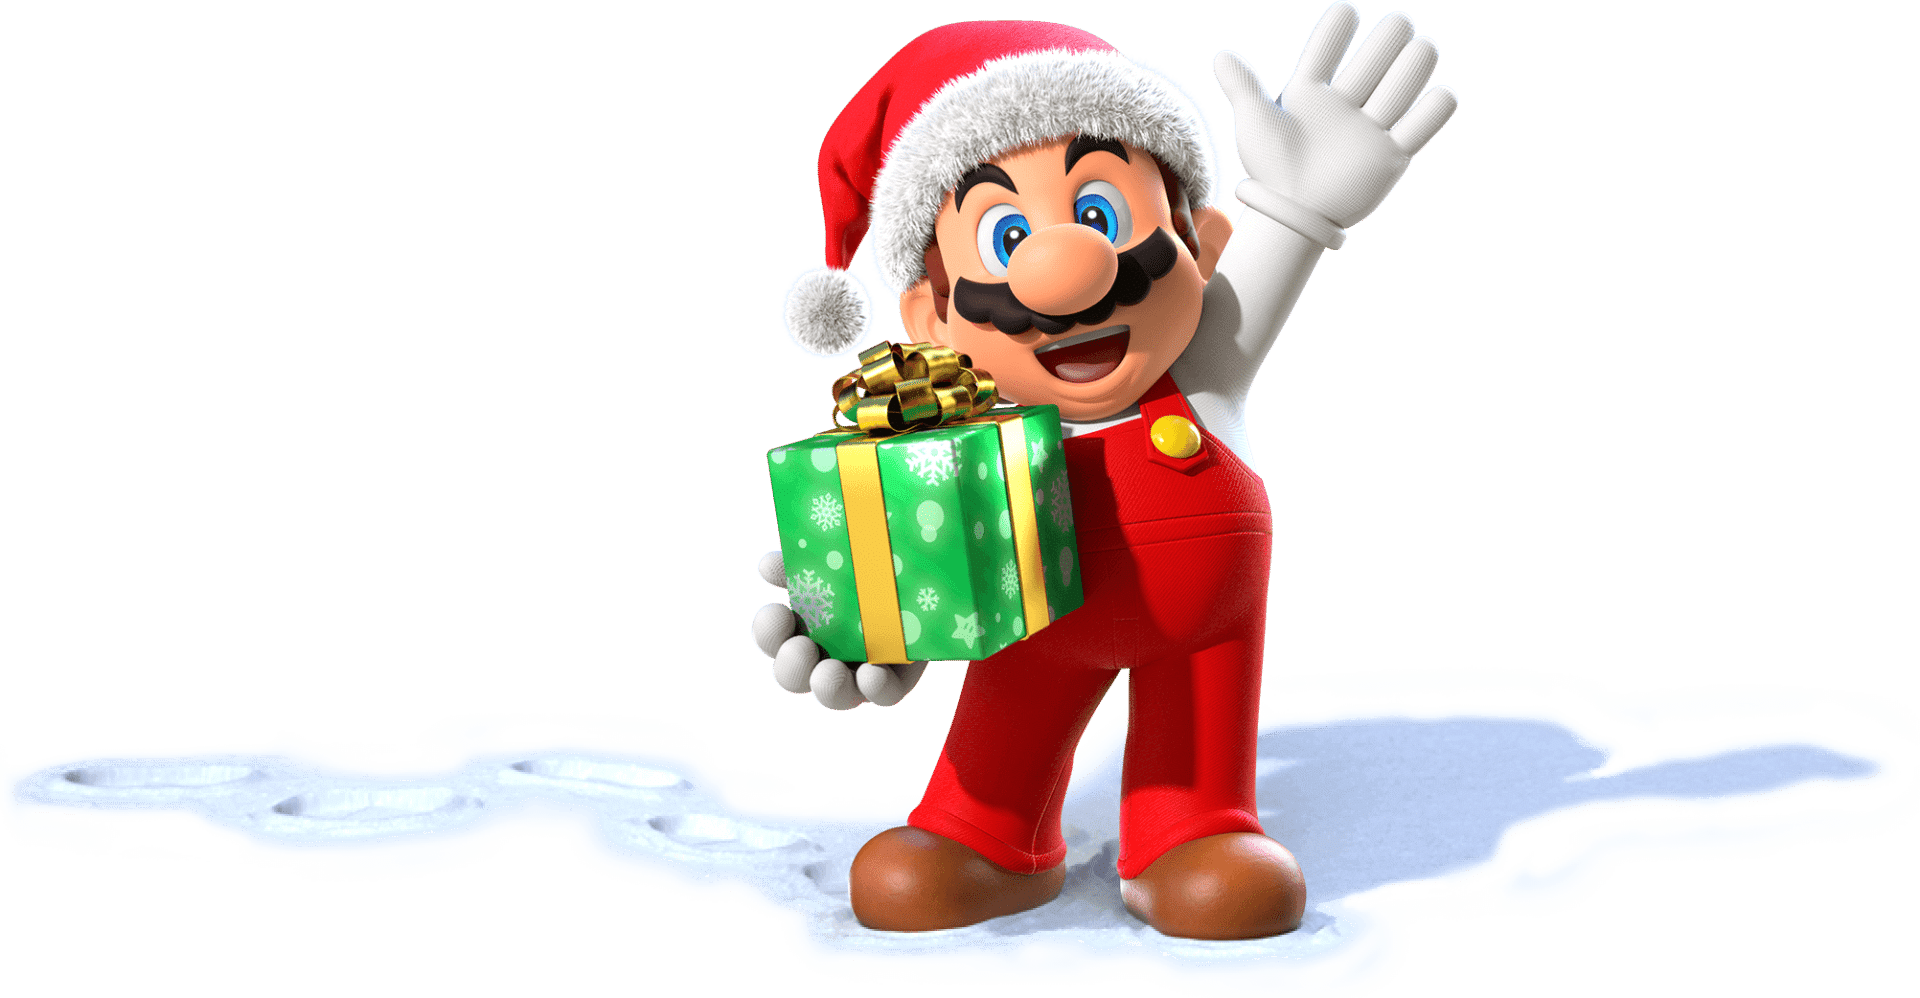 The Santa Claus & 8-Bit outfits are available in Super Mario Odyssey